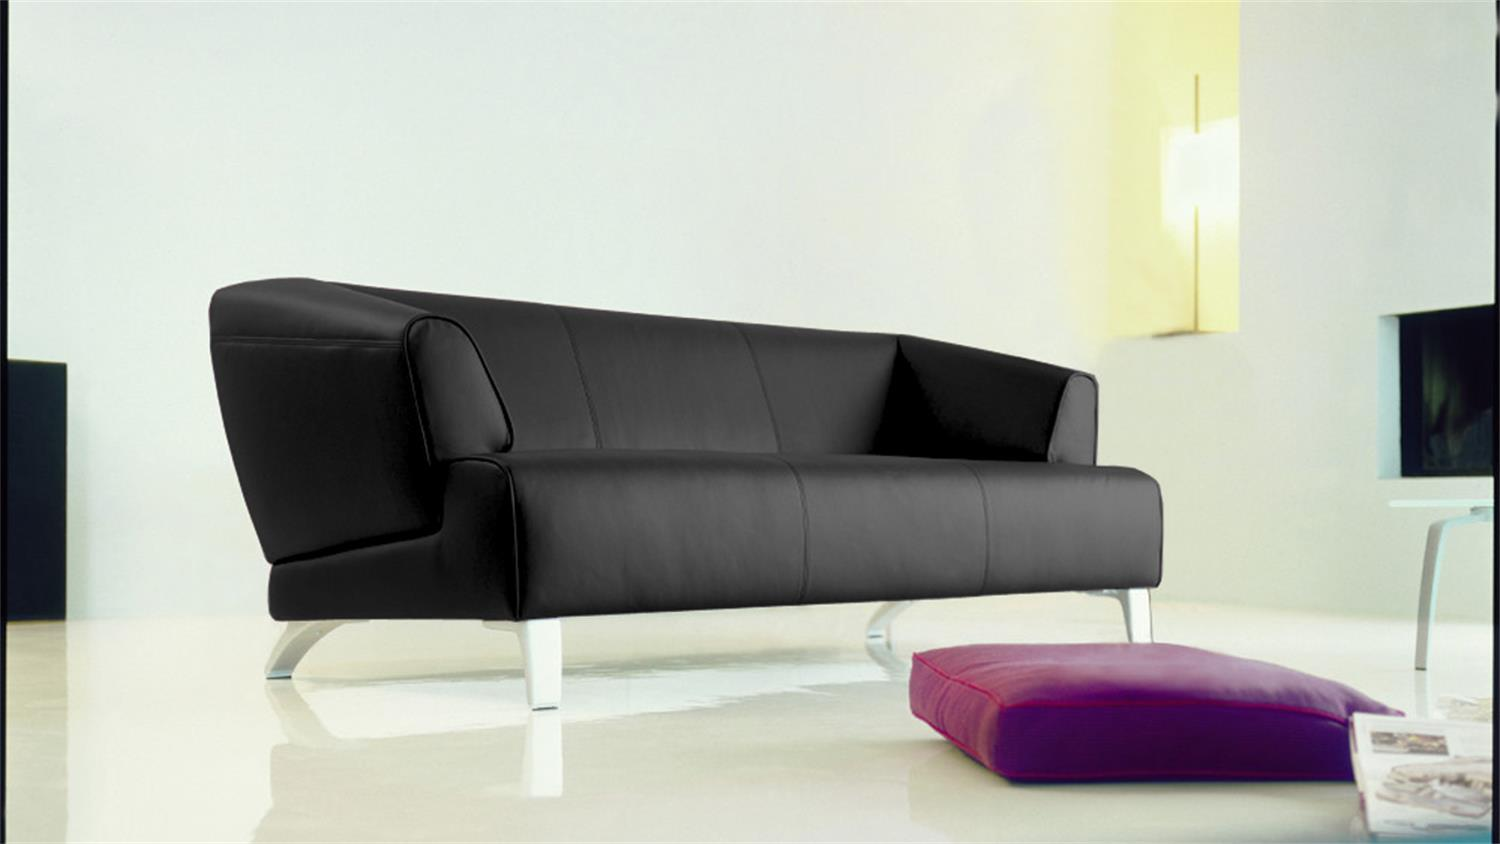 rolf benz sofabank sob 2300 leder schwarz 3 sitzer 195 cm. Black Bedroom Furniture Sets. Home Design Ideas